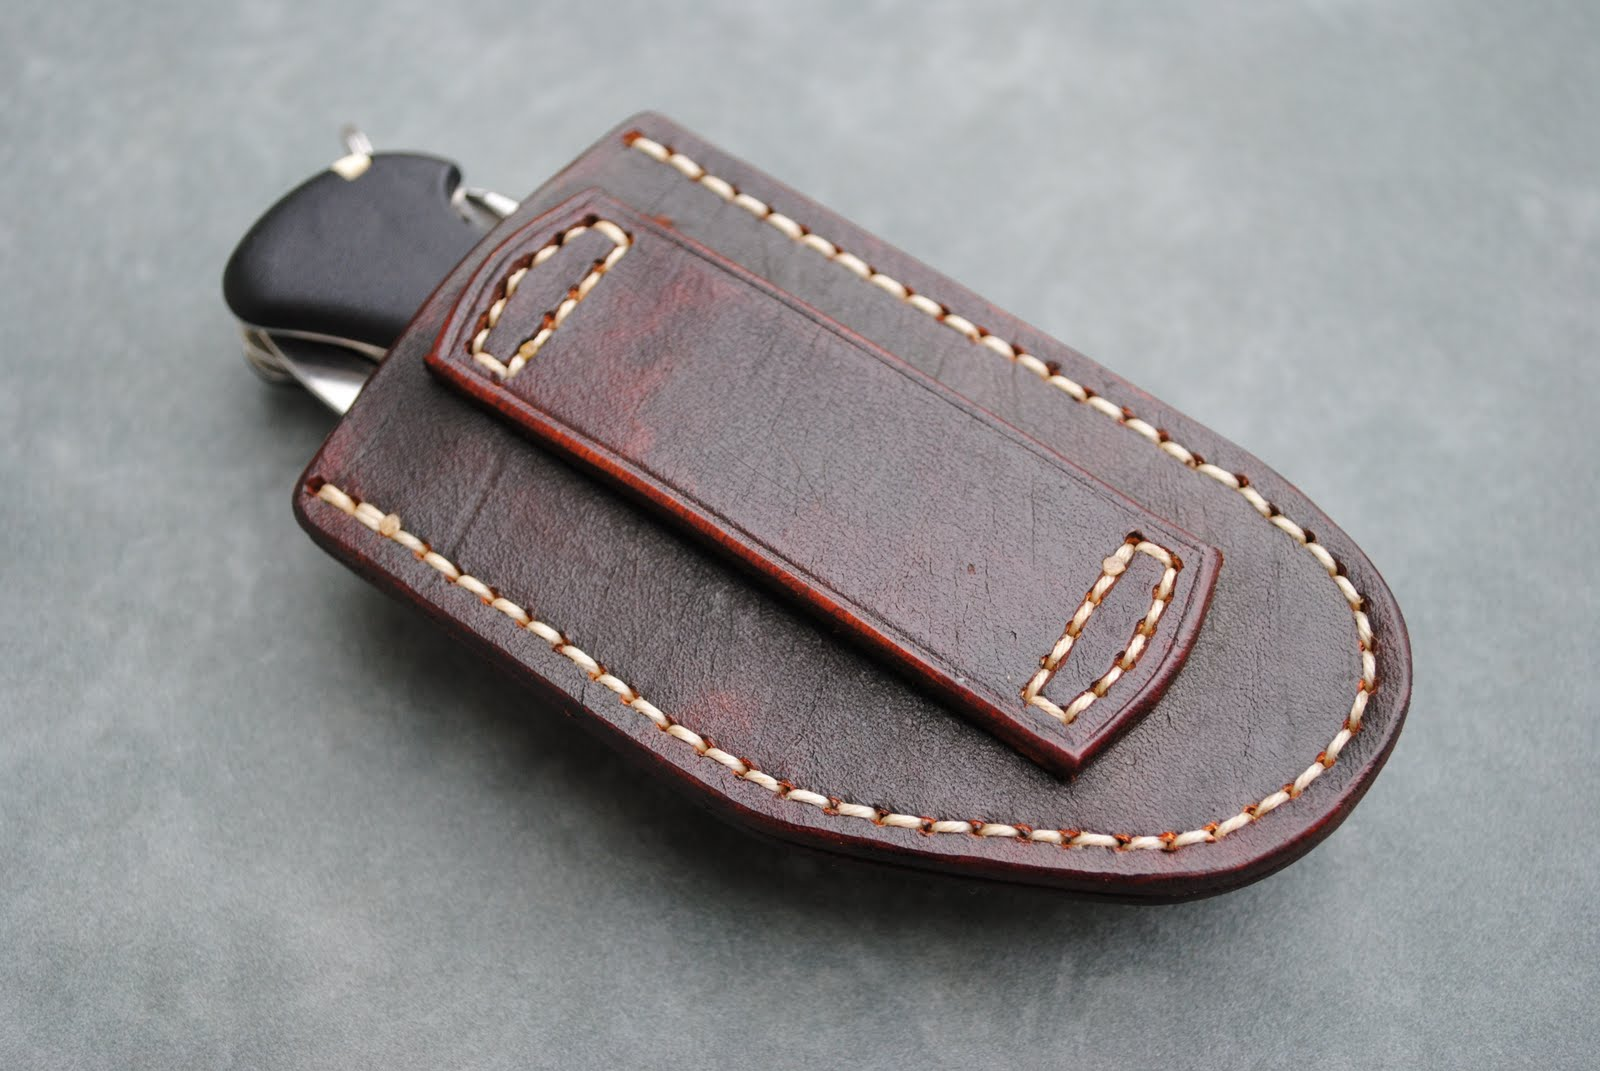 Formed Sheath For Victorinox One Hand Trekker Knife Gun